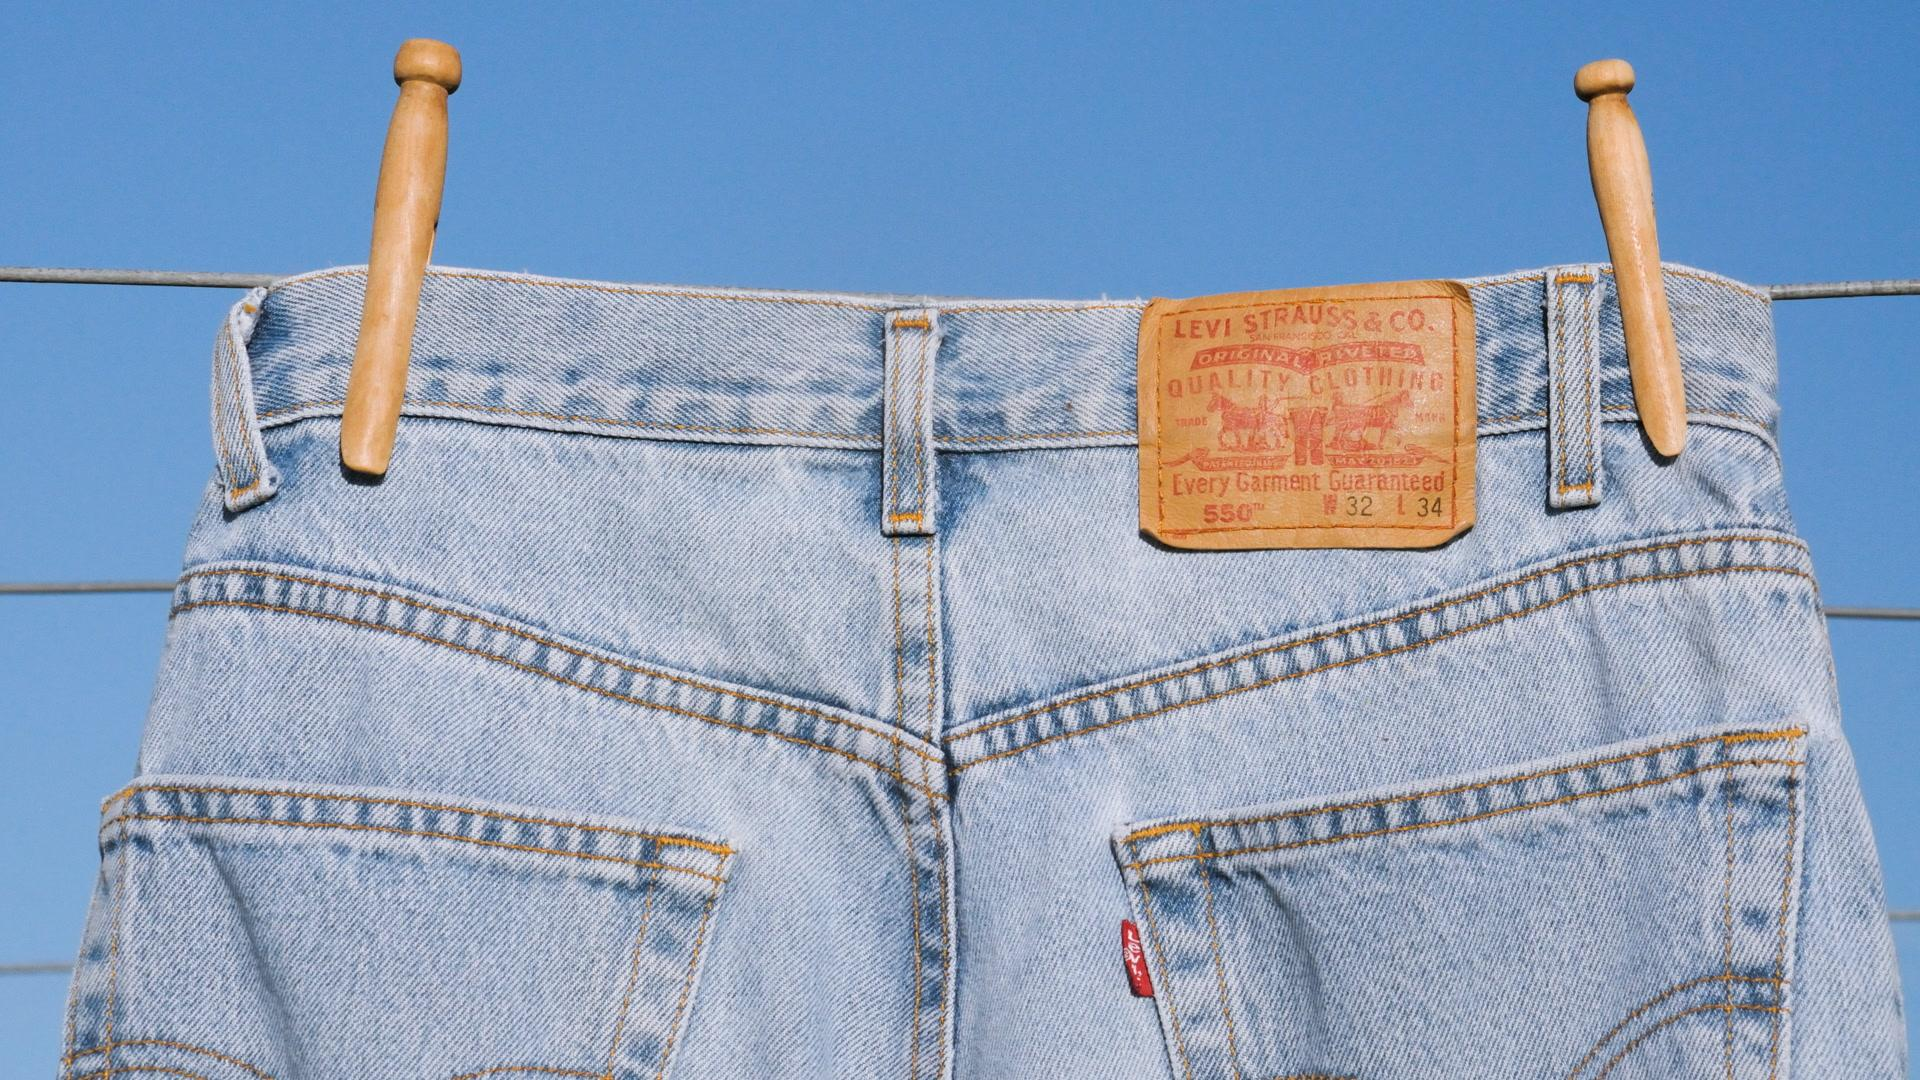 13 Ridiculous Lawsuits Against the Brands You Love